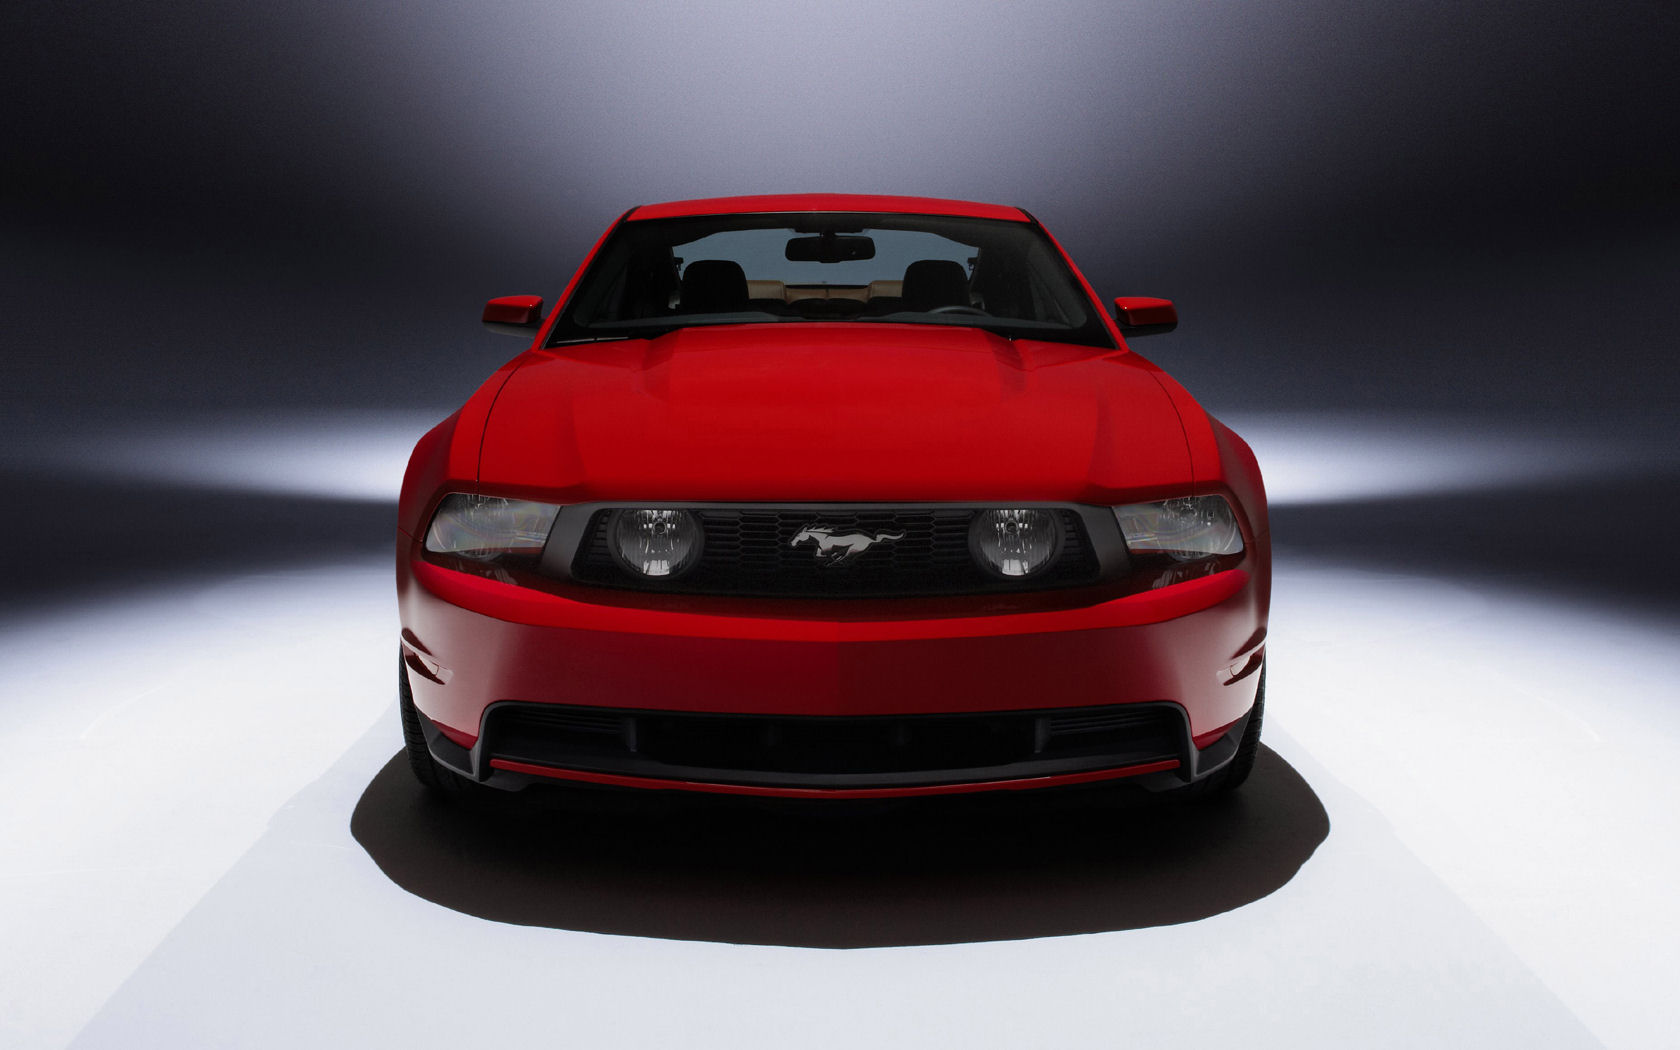 Ford Ford Mustang Ford Mustang Desktop Wallpapers Widescreen 1680x1050